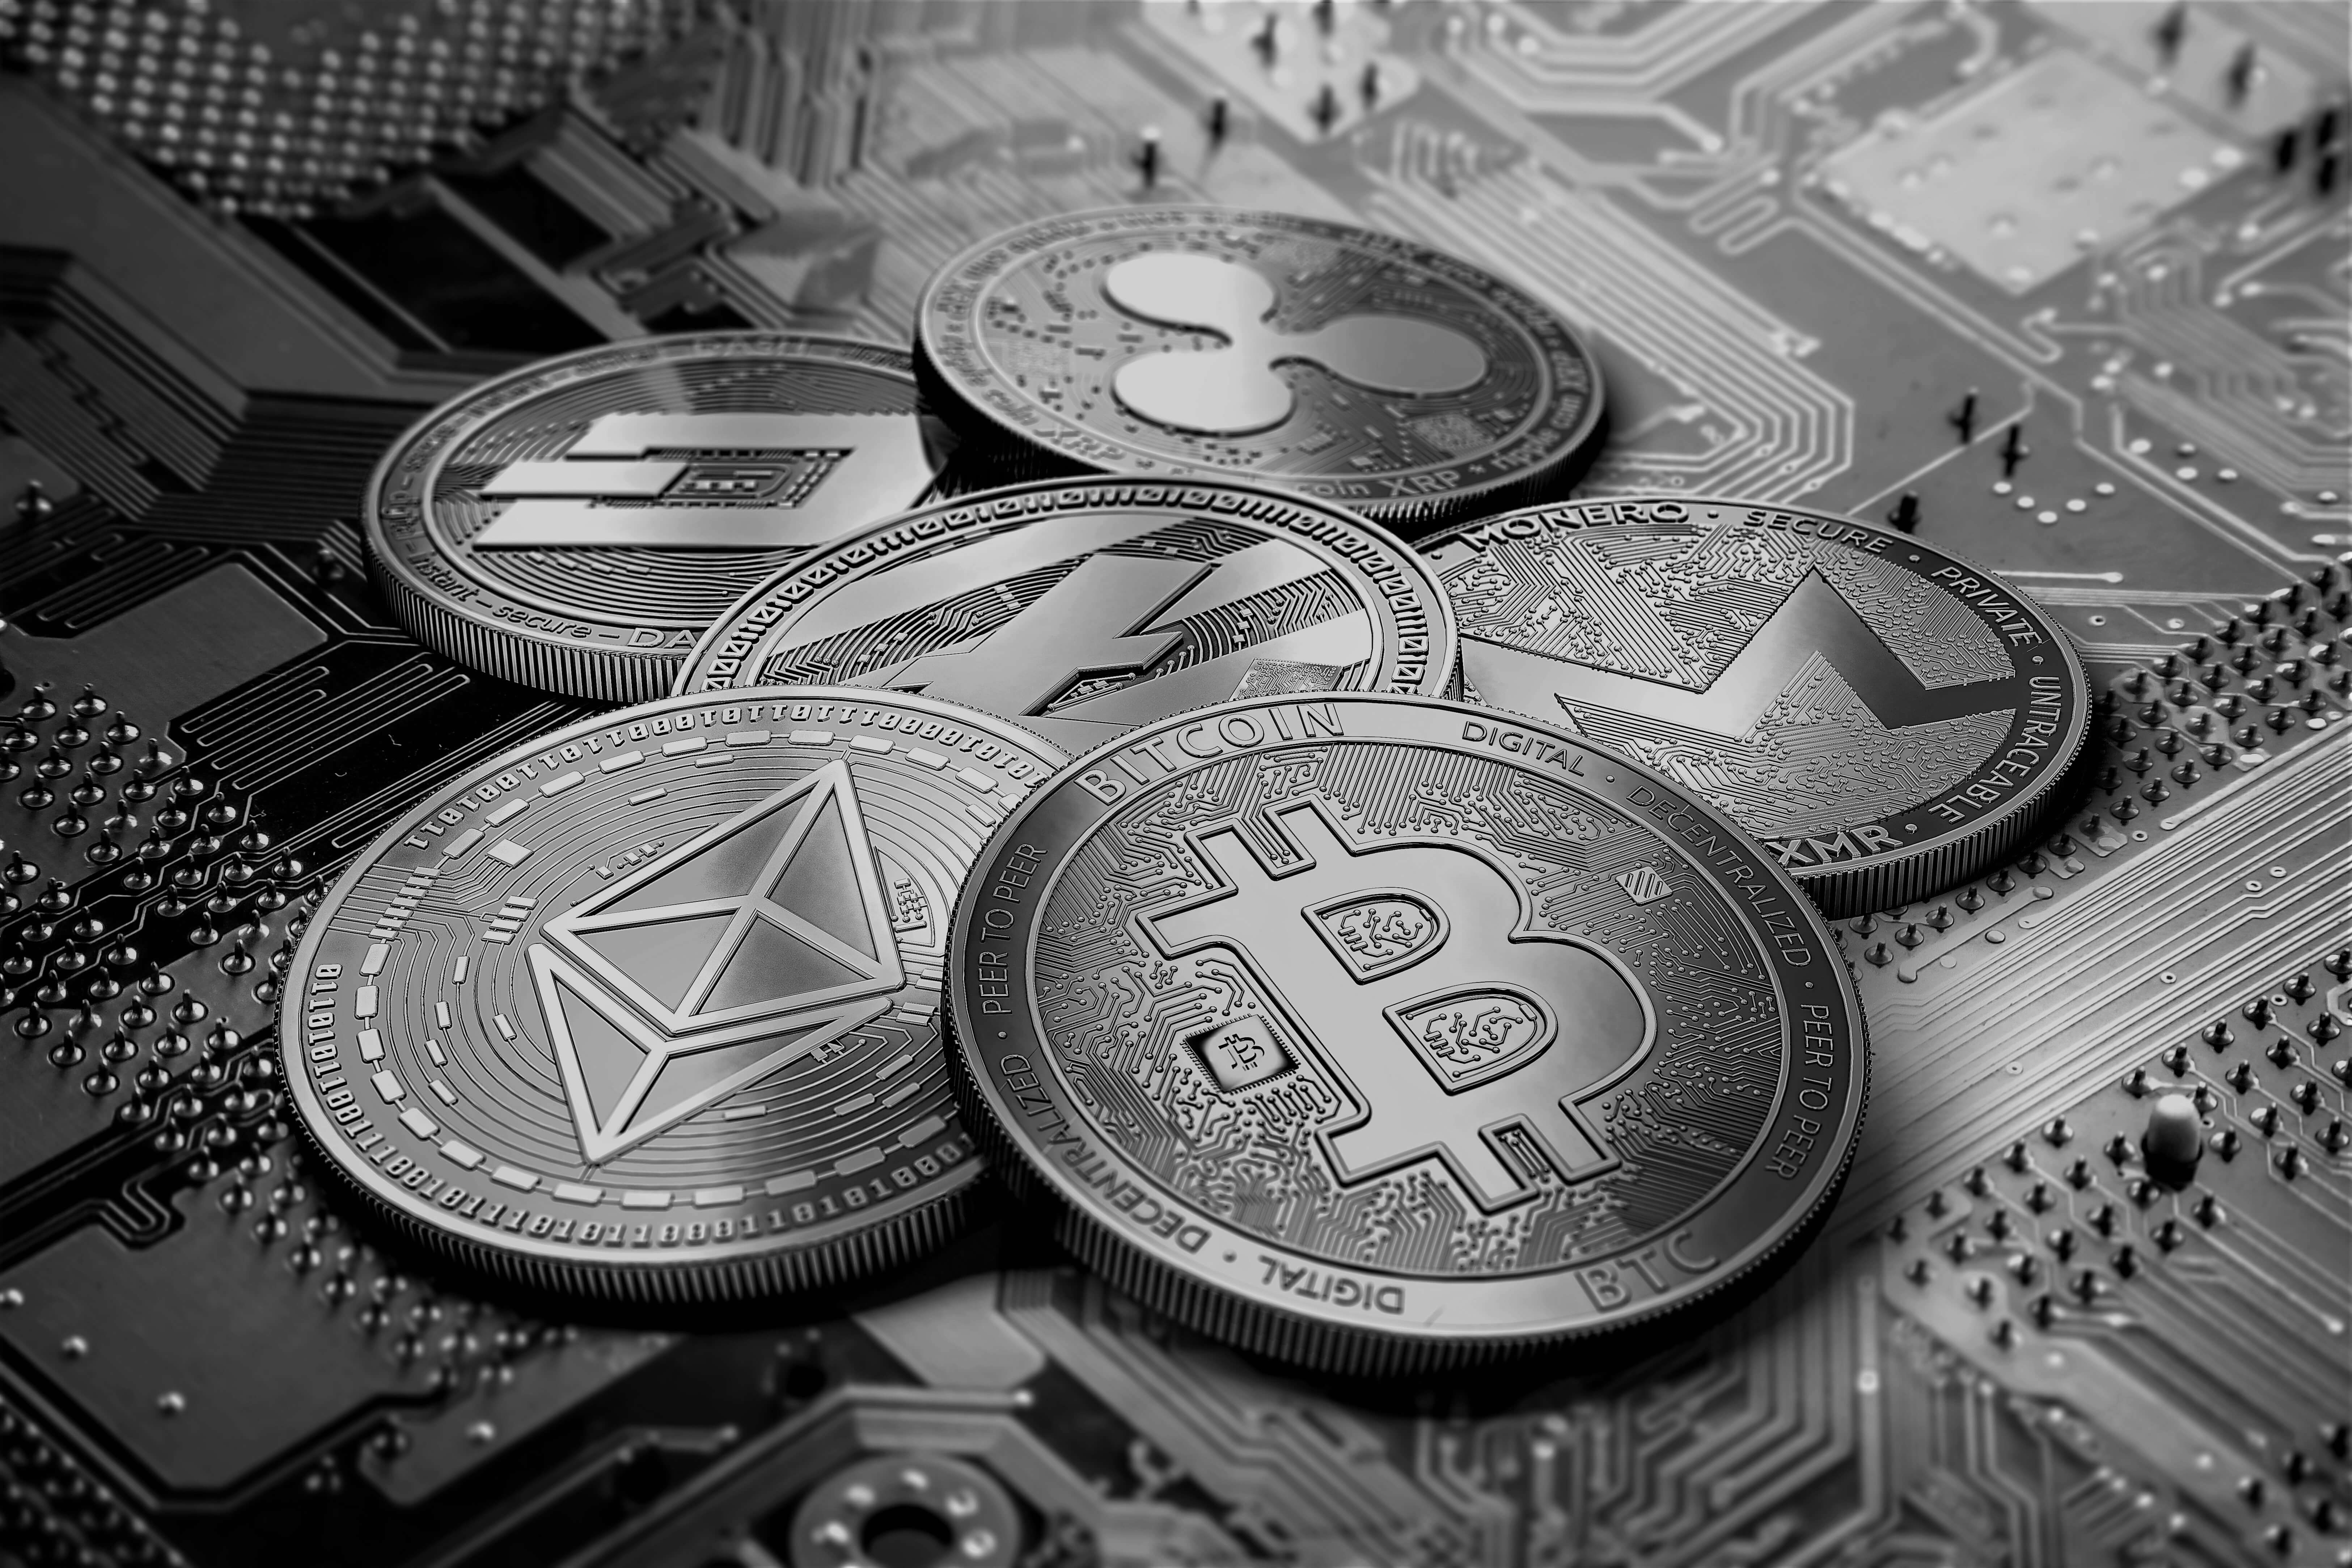 Regulator Fears Turn to Action on Cryptocurrencies